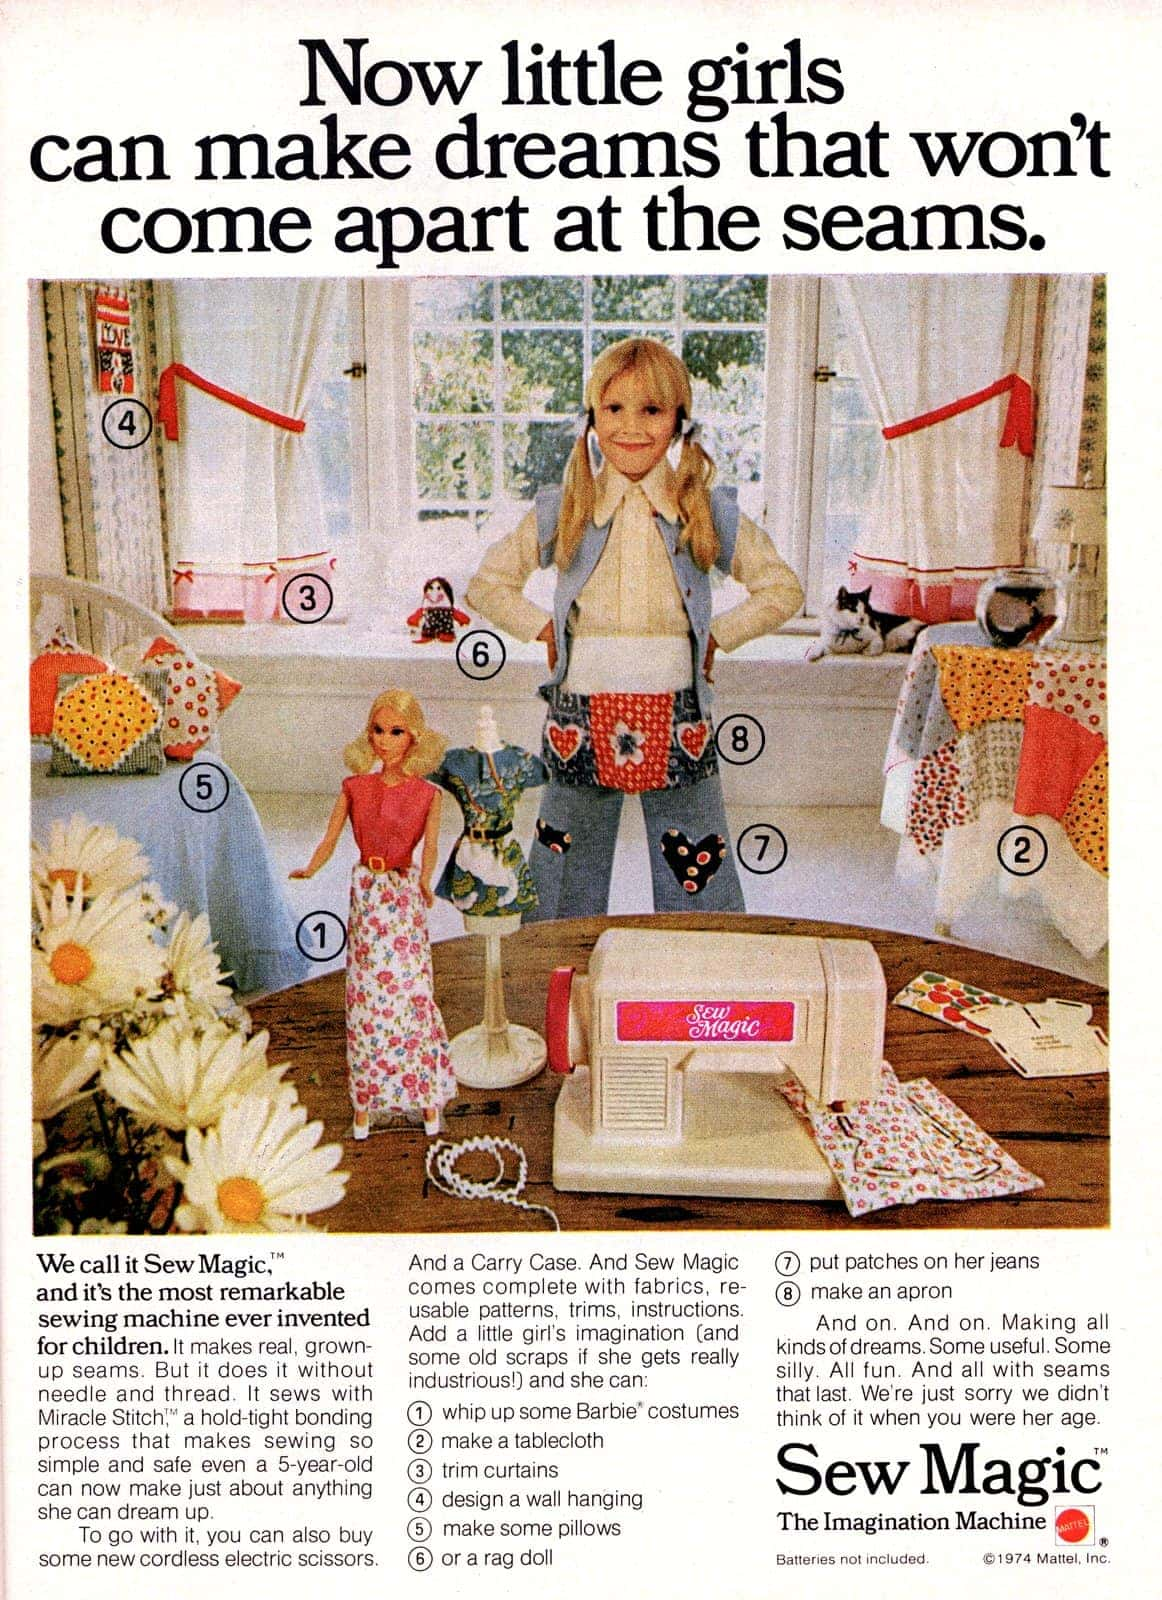 Vintage Sew Magic sewing machines for kids